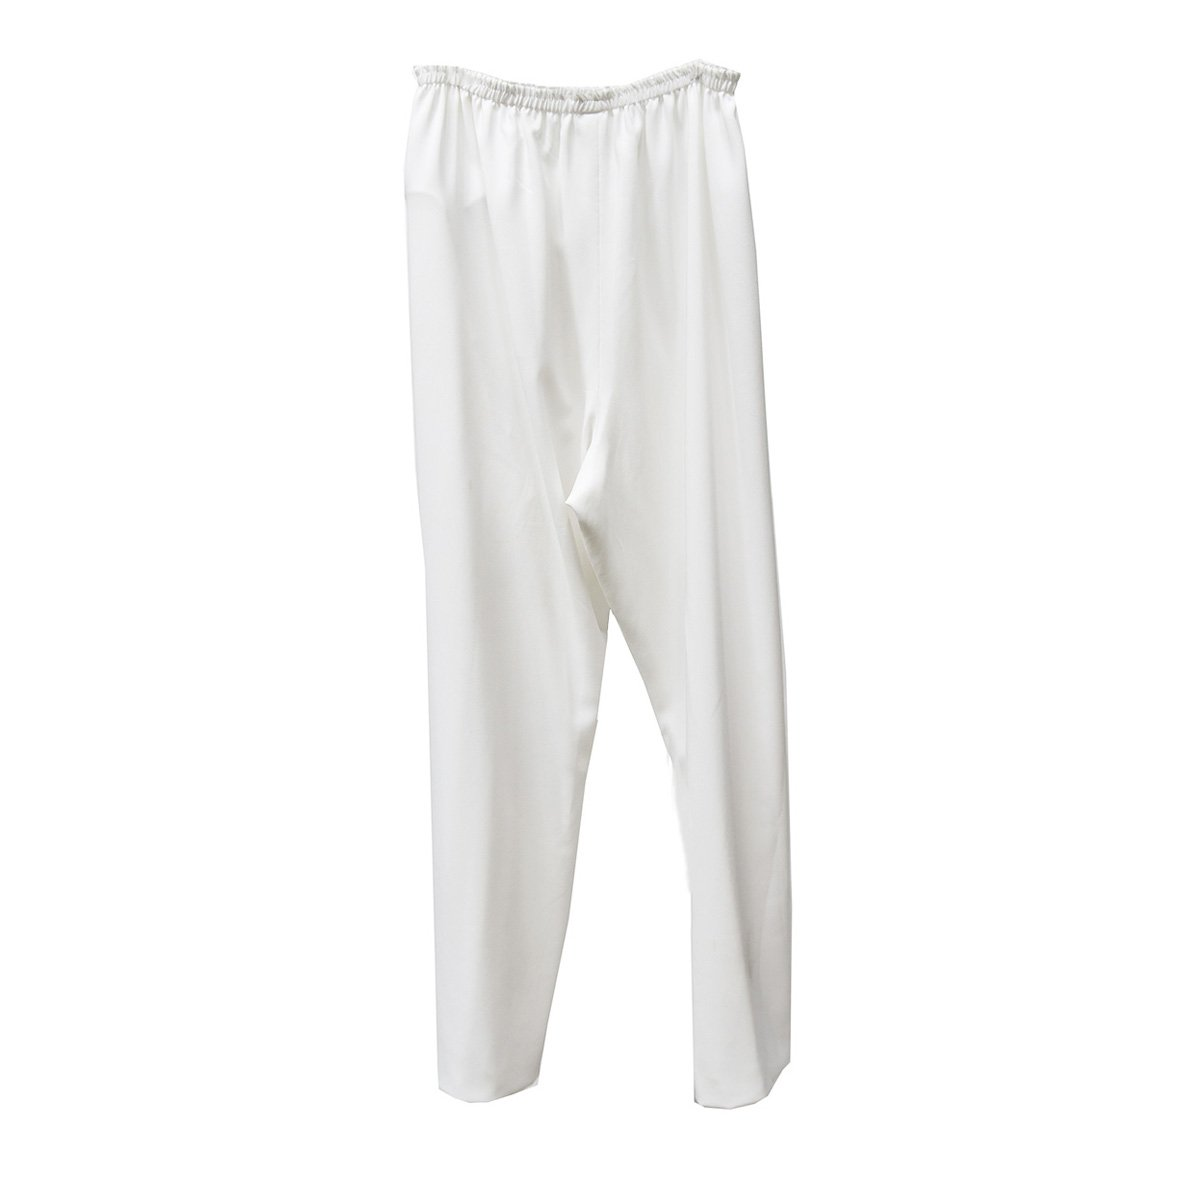 White Straight Leg Pants 2, Elastic Waist, XL